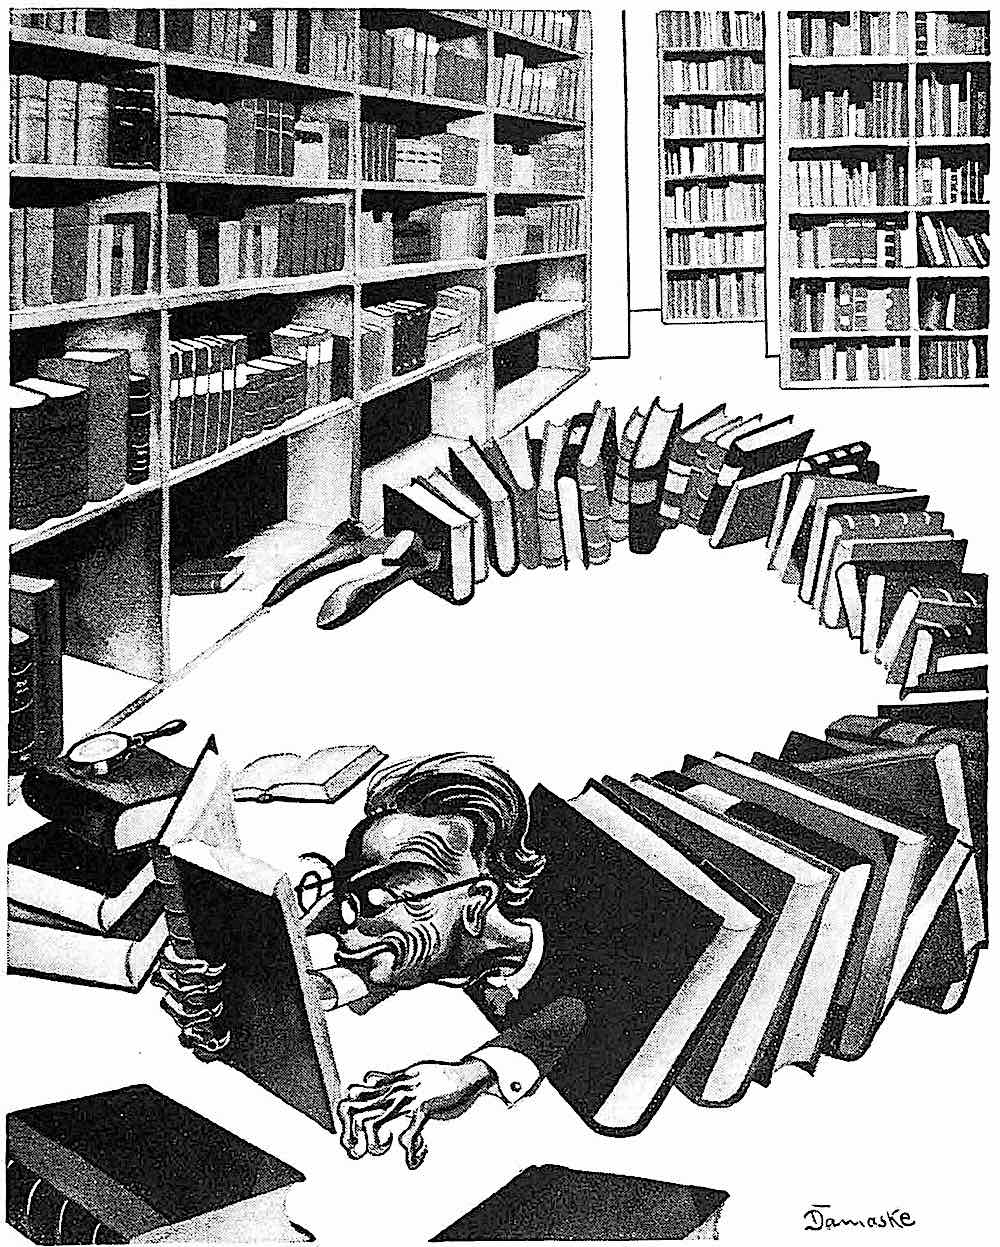 Erwin Damaske 1932, an avid book reader in his library